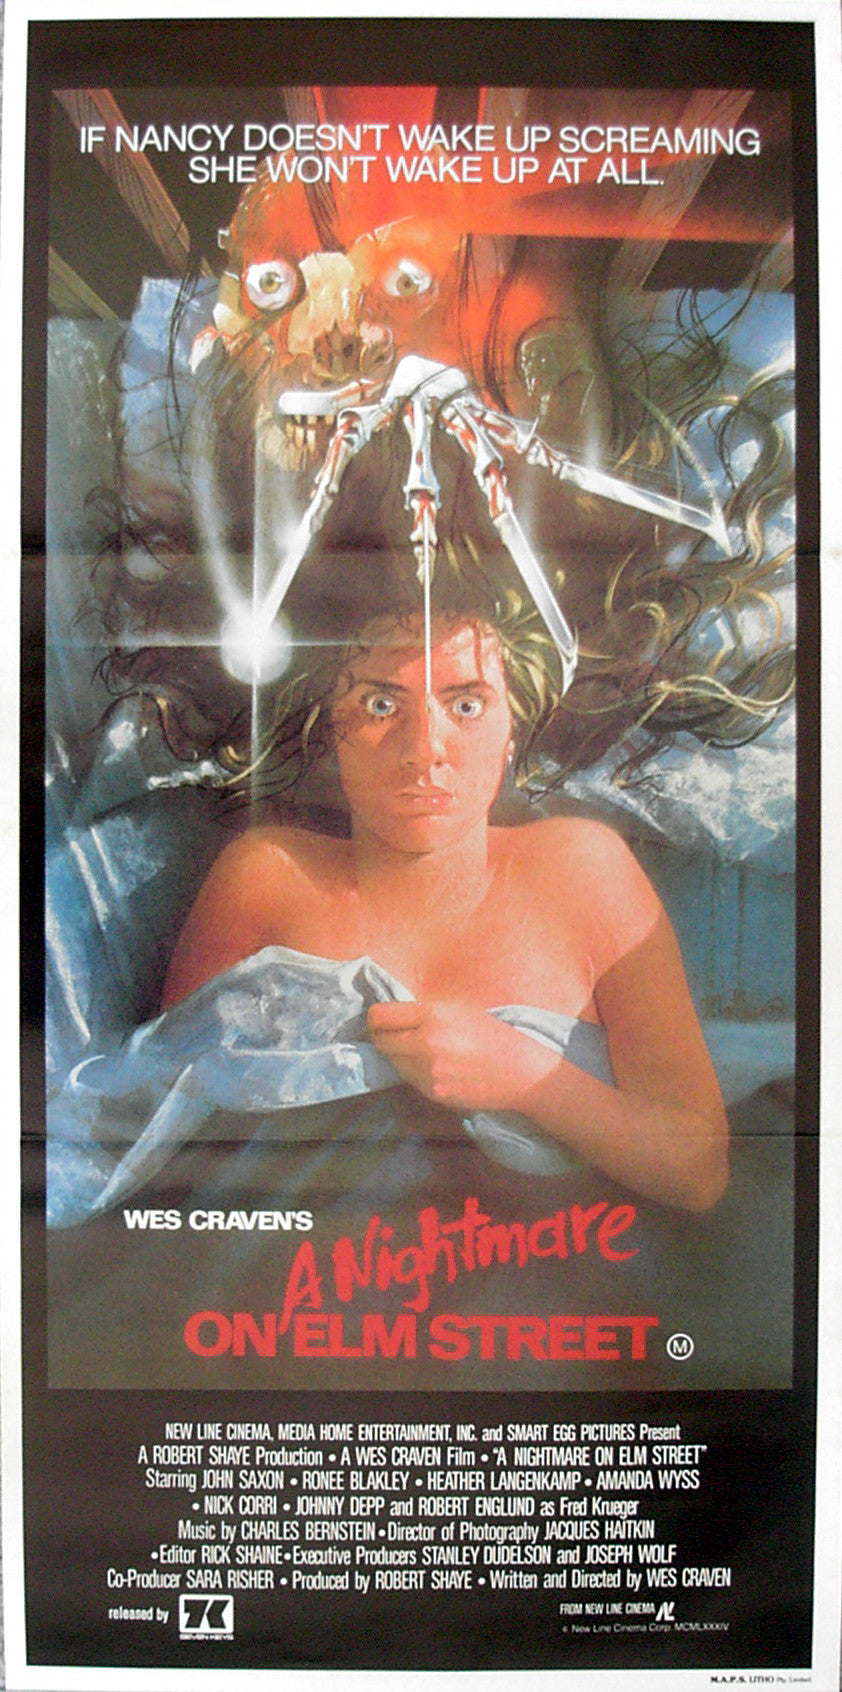 NIGHTMARE ON ELM STREET, A - Australian poster